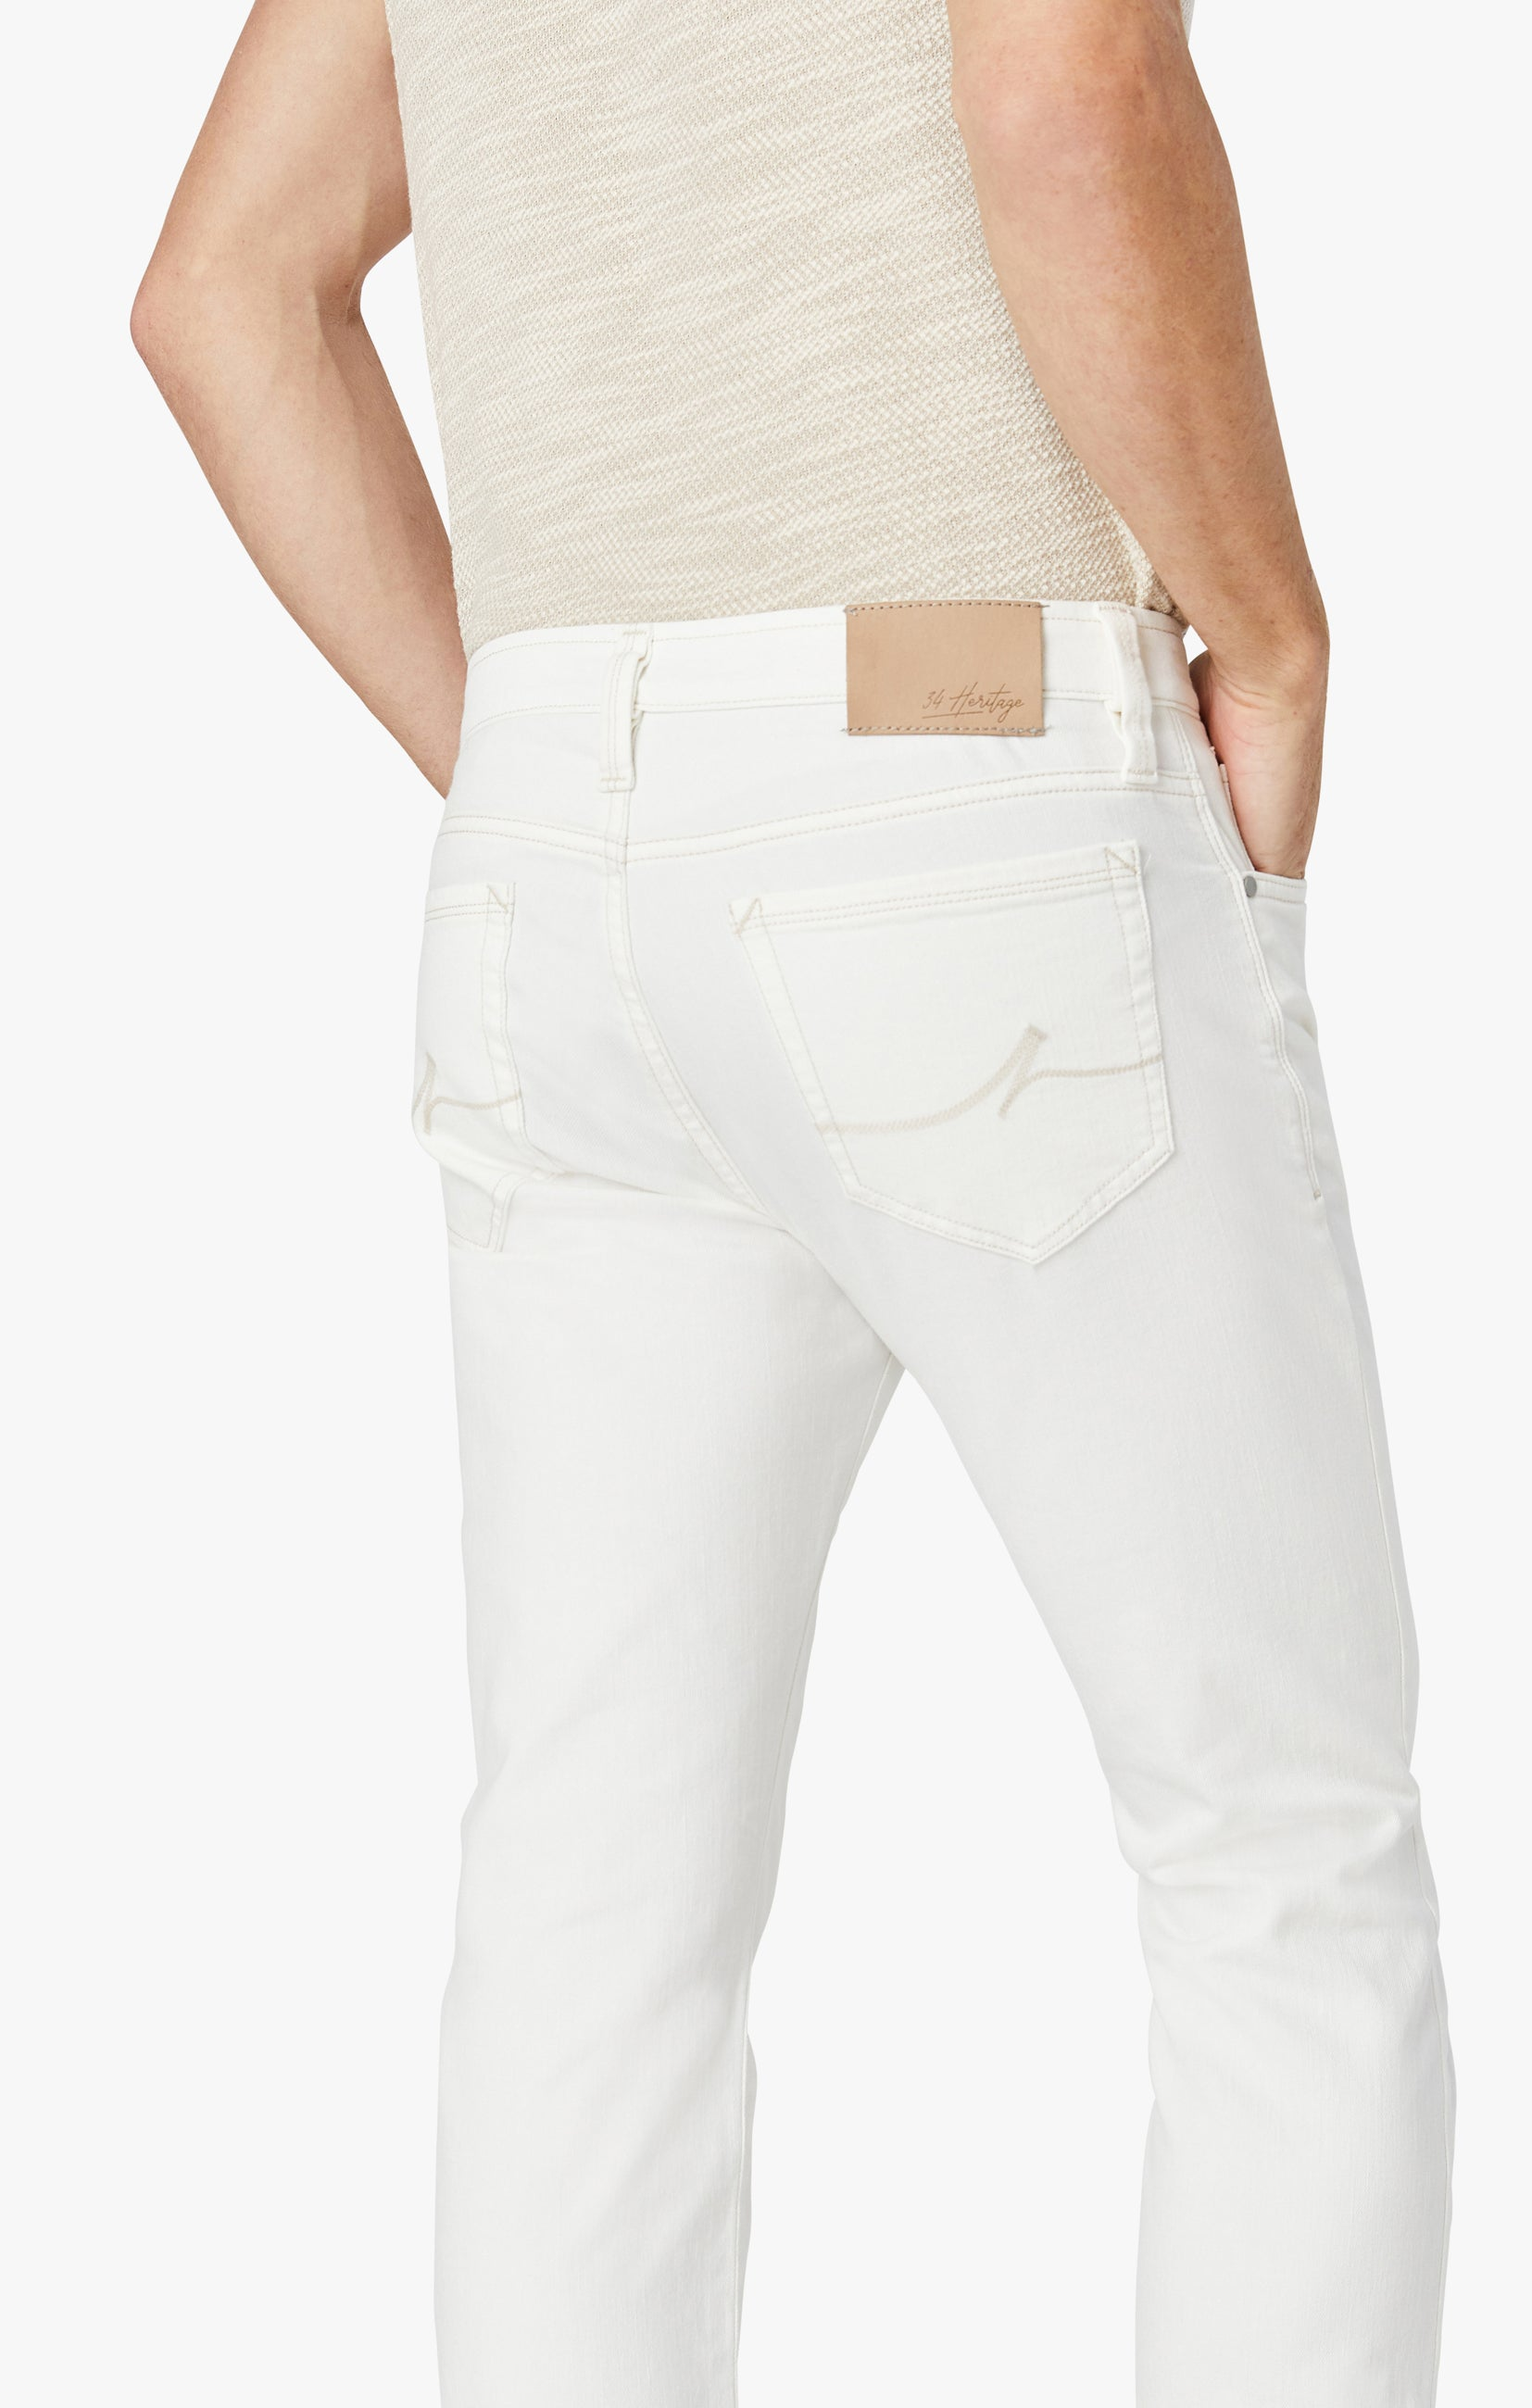 Courage Straight Leg Jeans in White Denim Image 7